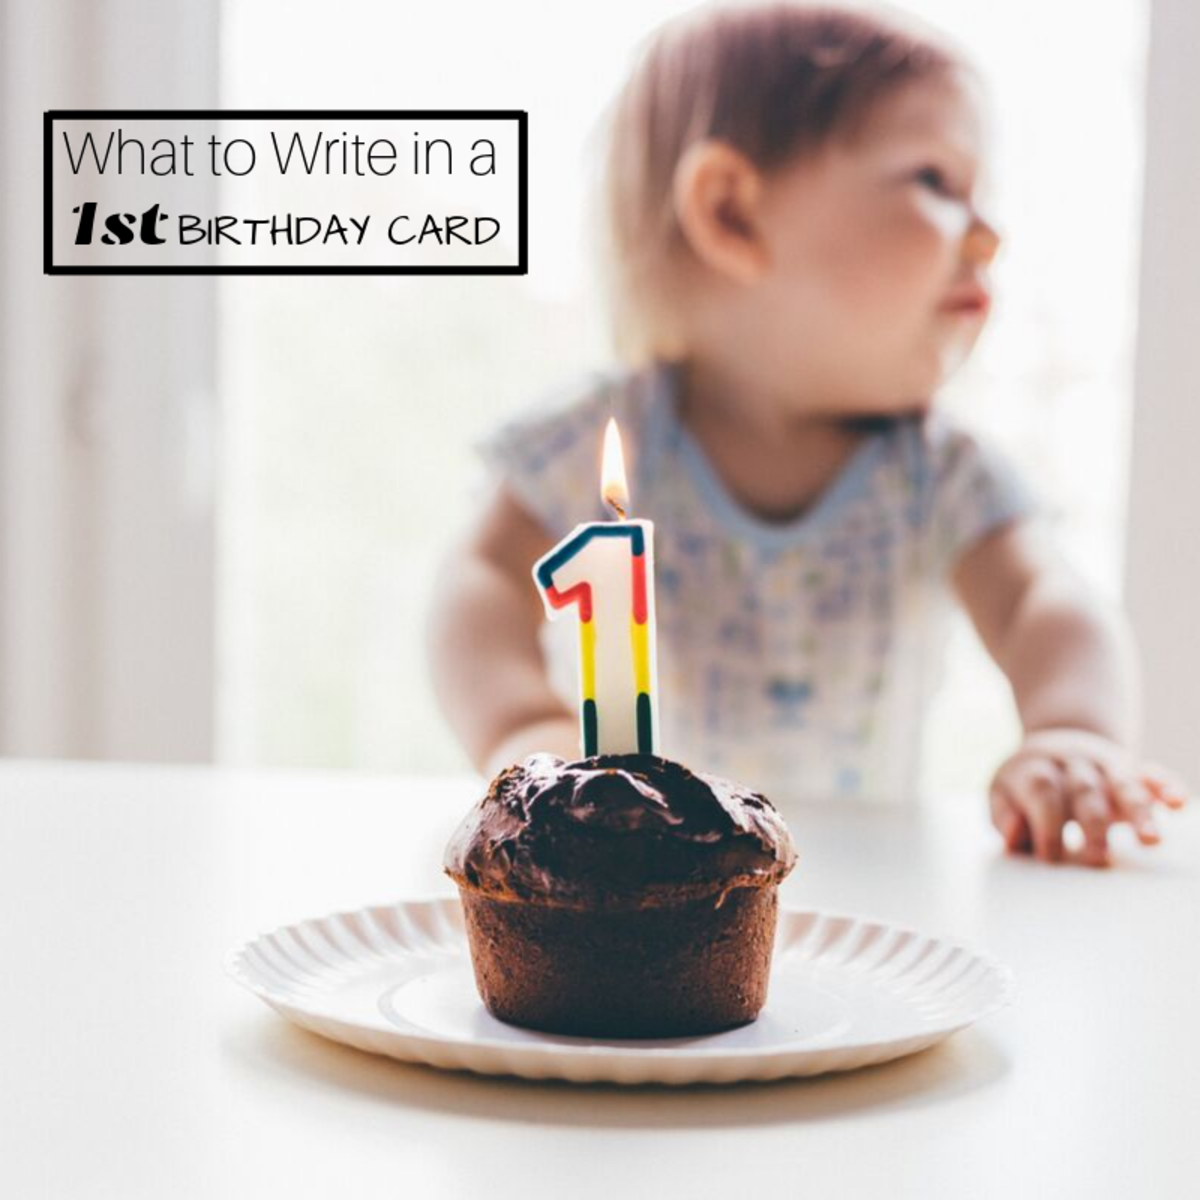 1st Birthday Wishes: What to Write in a One-Year-Old's Card